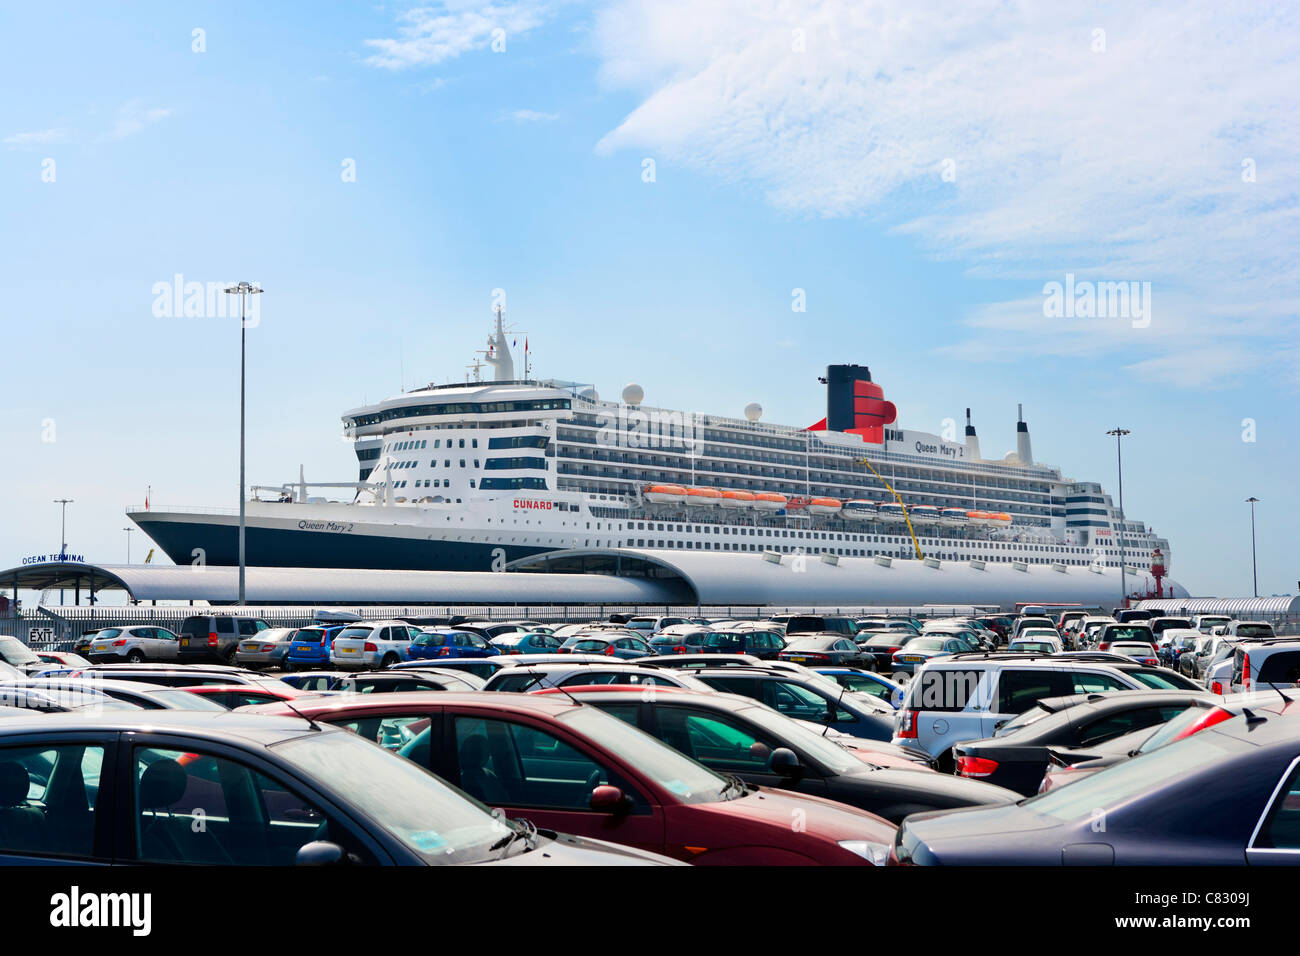 The cruise liner Queen Mary 2 viewed across a car park at Ocean Terminal, Southampton Docks, Southampton, Hampshire, - Stock Image